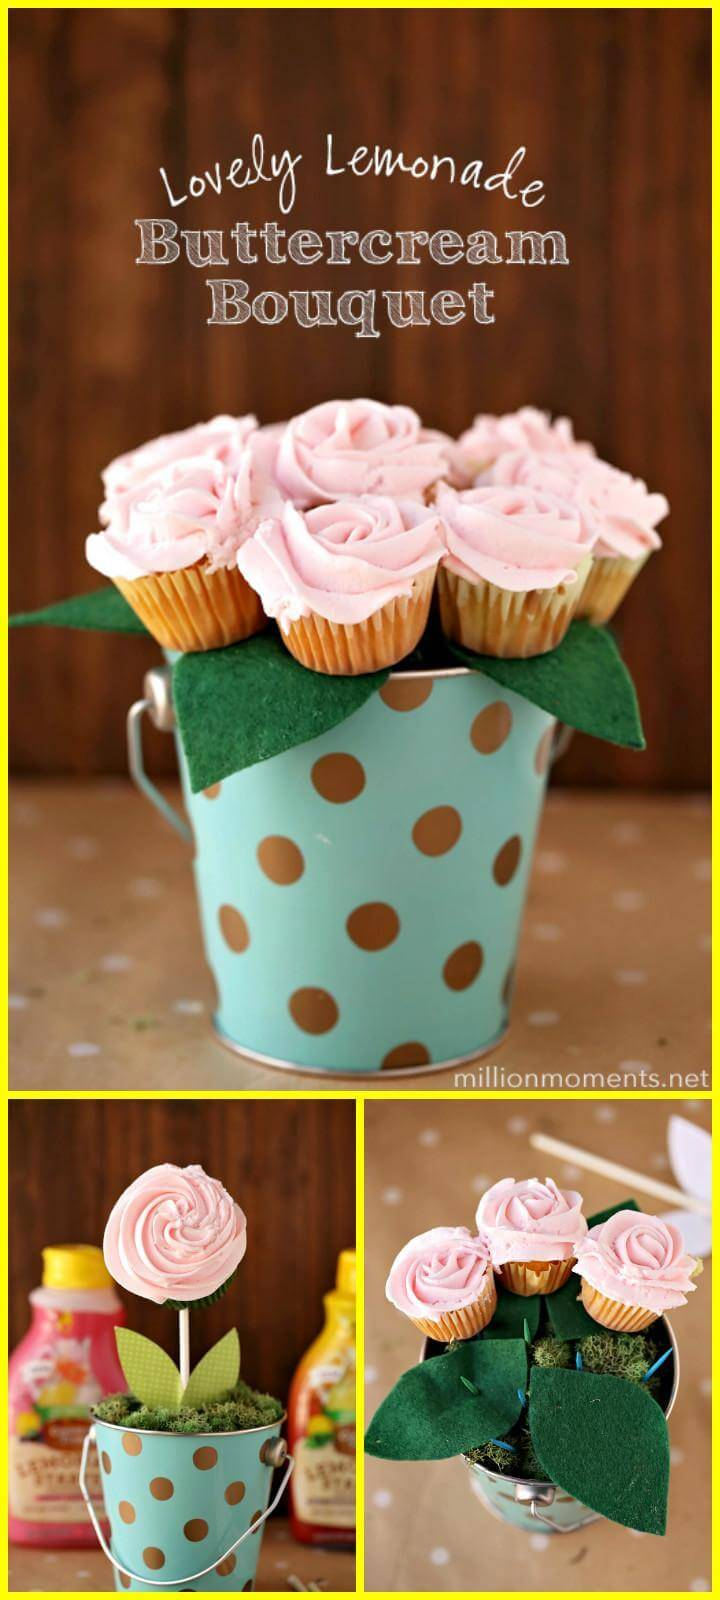 300 Diy Mothers Day Gifts You Can Make For Your Mom Diy Crafts